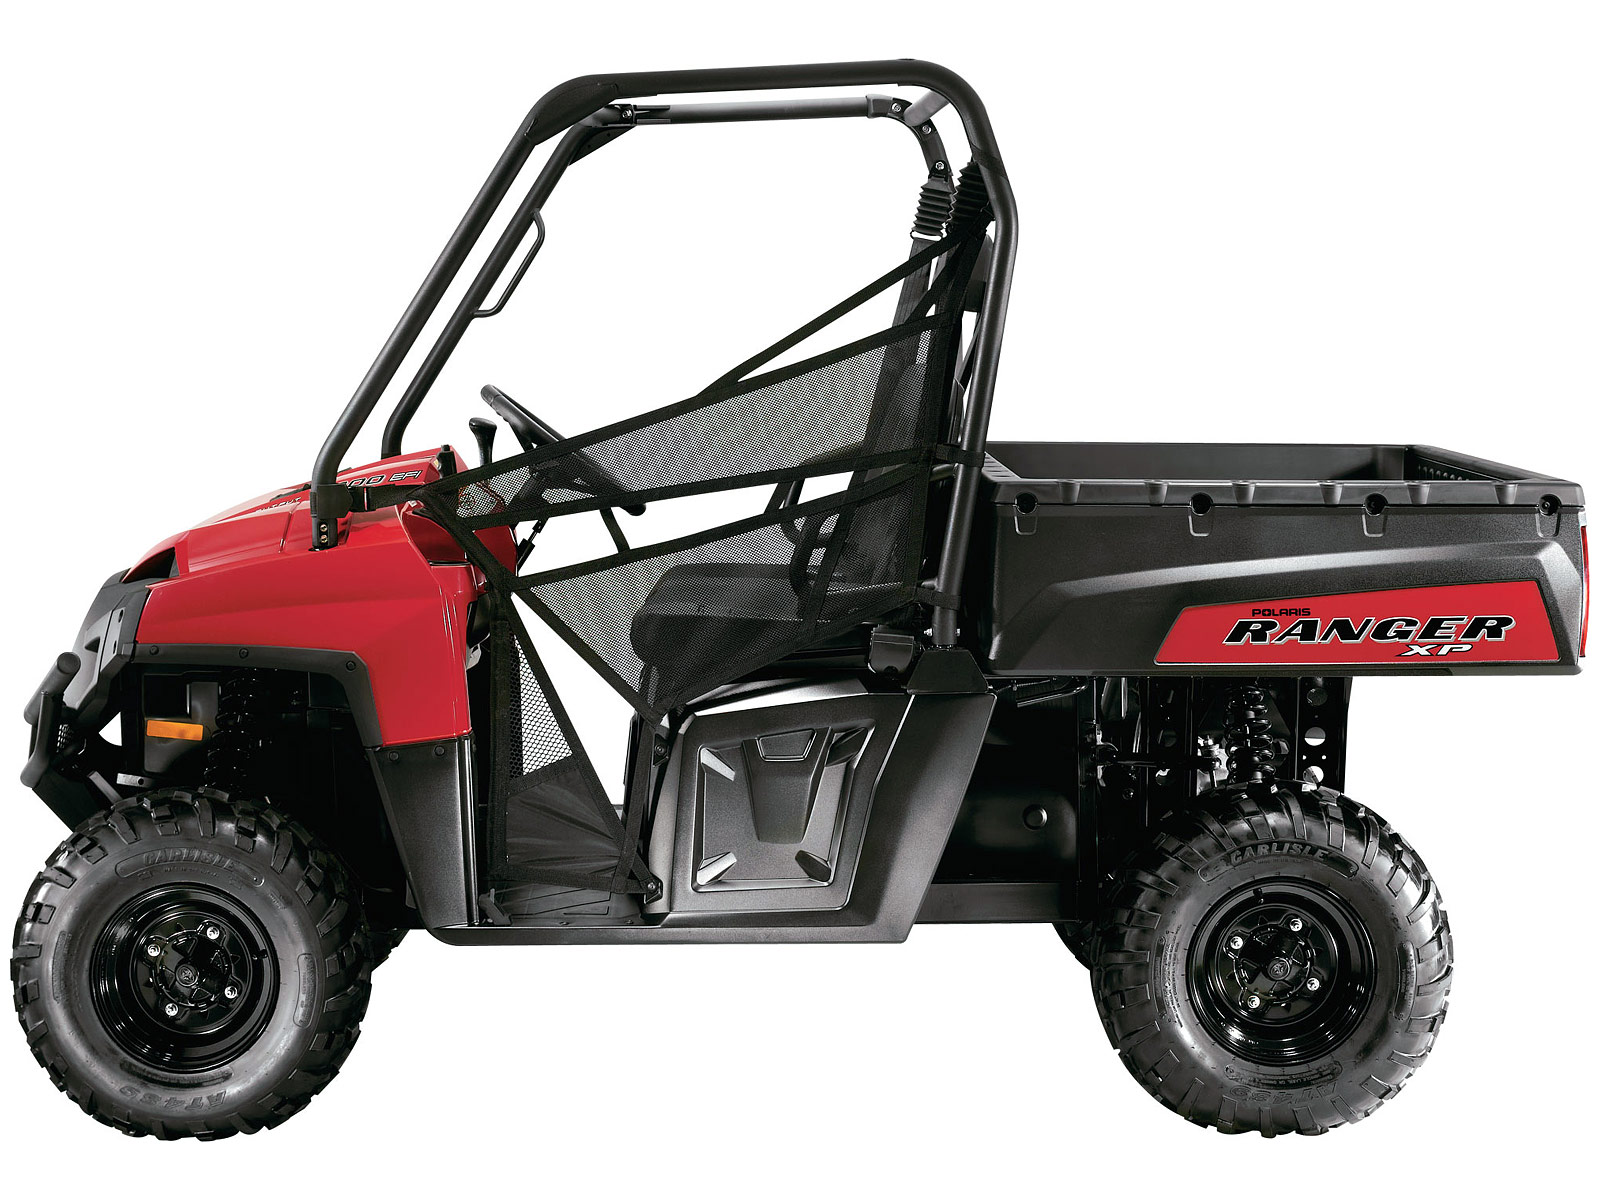 Polaris Ranger Diesel Problems | Car Review, Specs, Price and Release